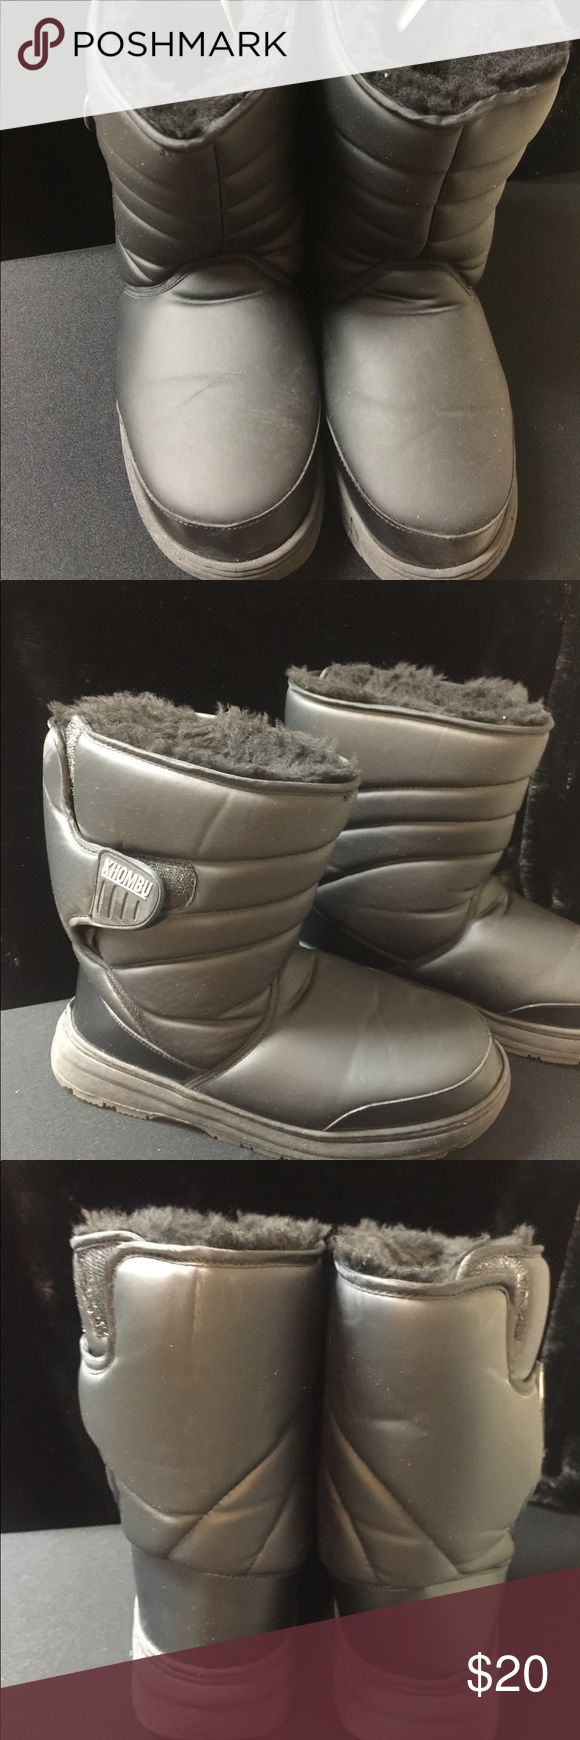 Black Khombu ski boots Size 9 warm ski boots. Great condition. Worn for one ski trip. Khombu Shoes Winter & Rain Boots